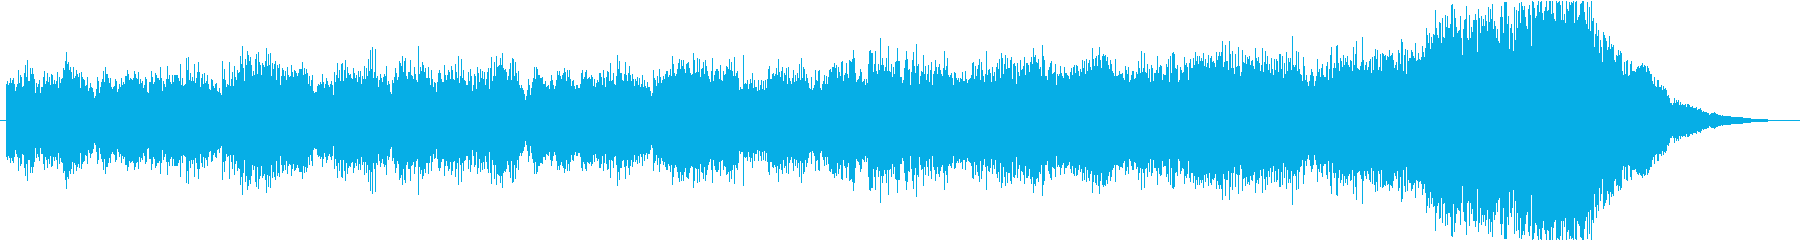 Oke Jingle that fits the movie's special 15-second commercial's reproduced waveform